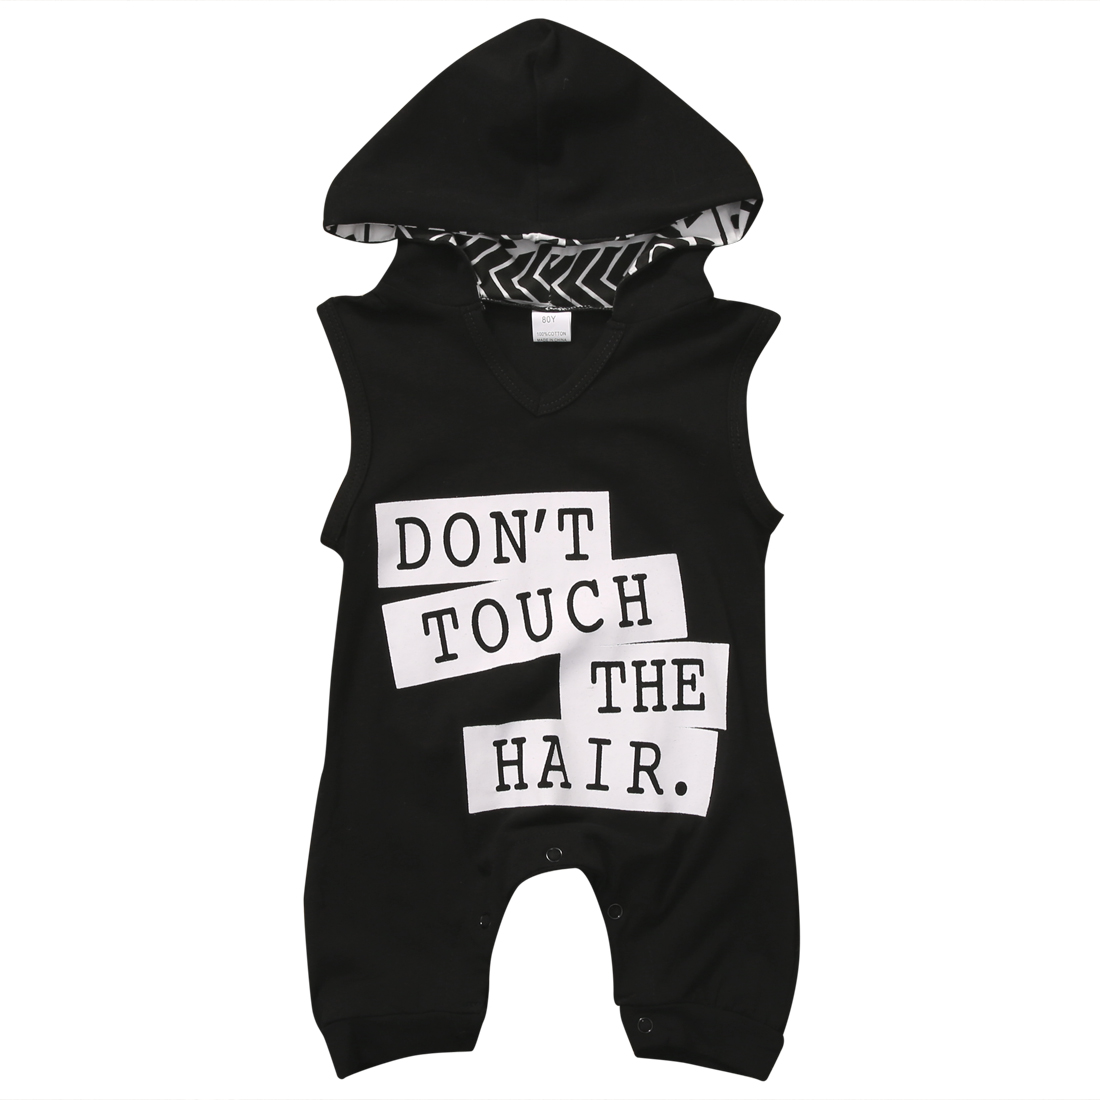 Newborn Infant Baby Boys Clothes Sleeveless Hooded Cotton Letter Romper Jumpsuit Outfits Baby Boy Summer Clothes new arrival boy costumes rompers cotton newborn infant baby boys romper jumpsuit sunsuit clothes outfits